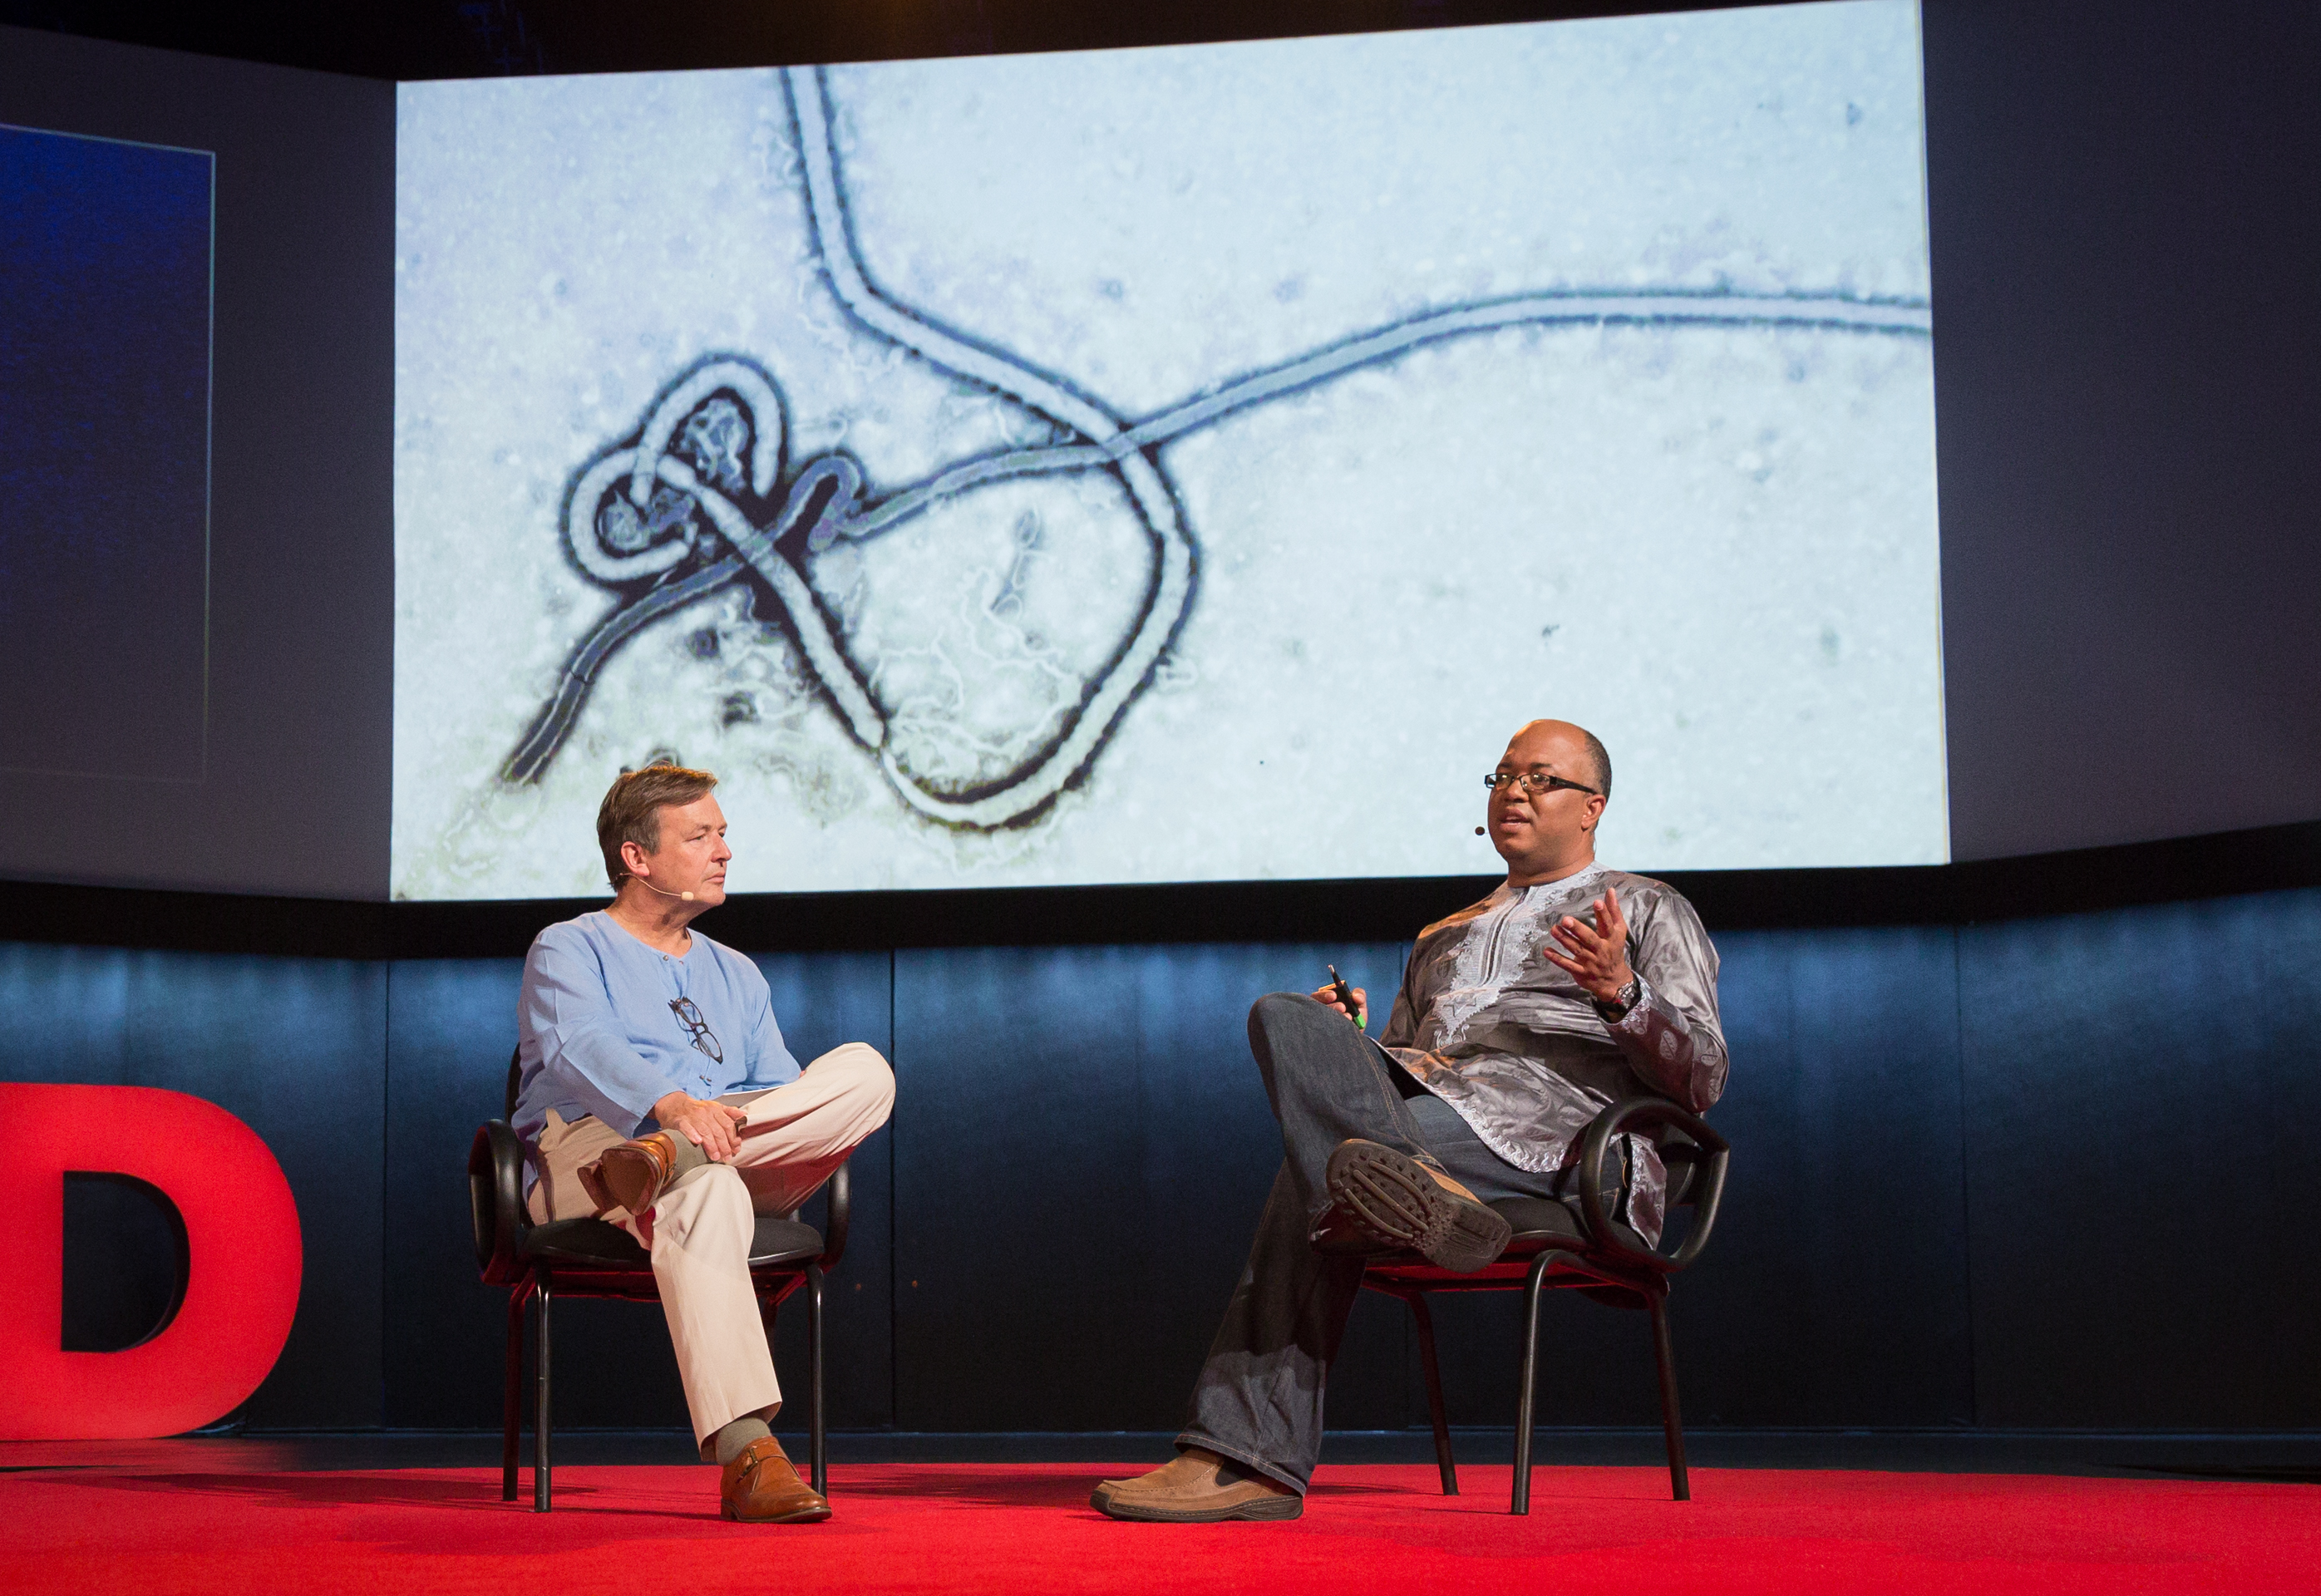 (L-R) Host Chris Anderson speaks with Chikwe Ihekweazu at TEDGlobal 2014. Photo: James Duncan Davidson/TED